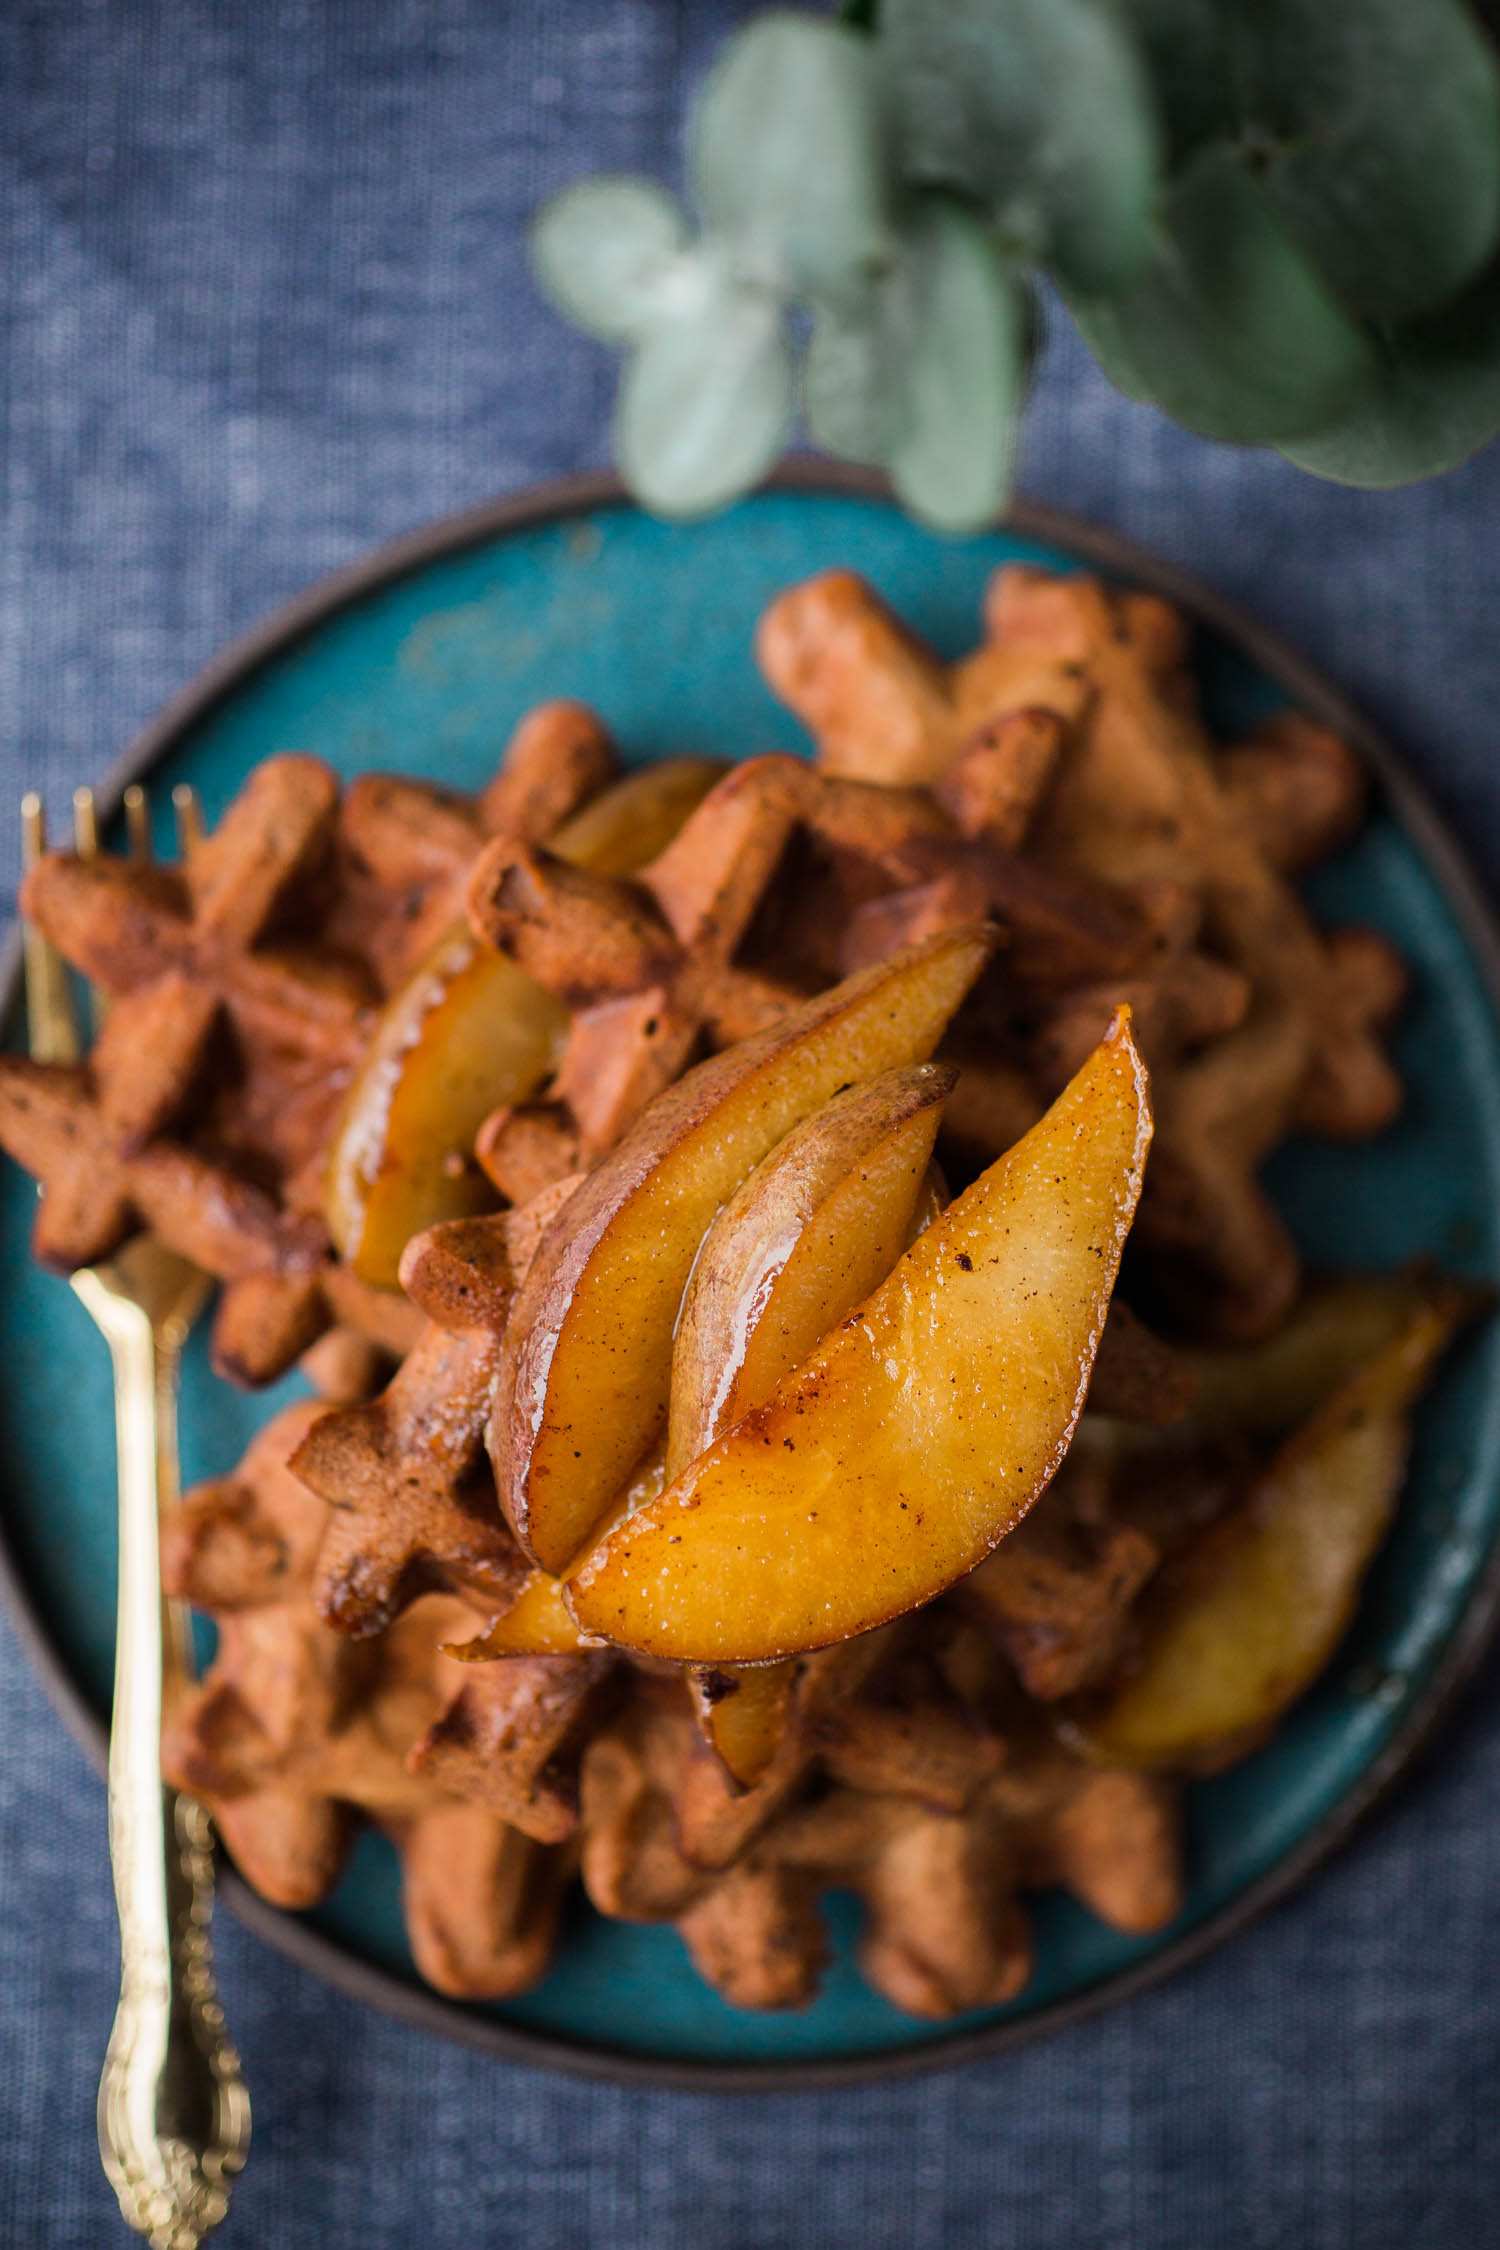 Vegan Cocoa Waffles With Caramelized Pears